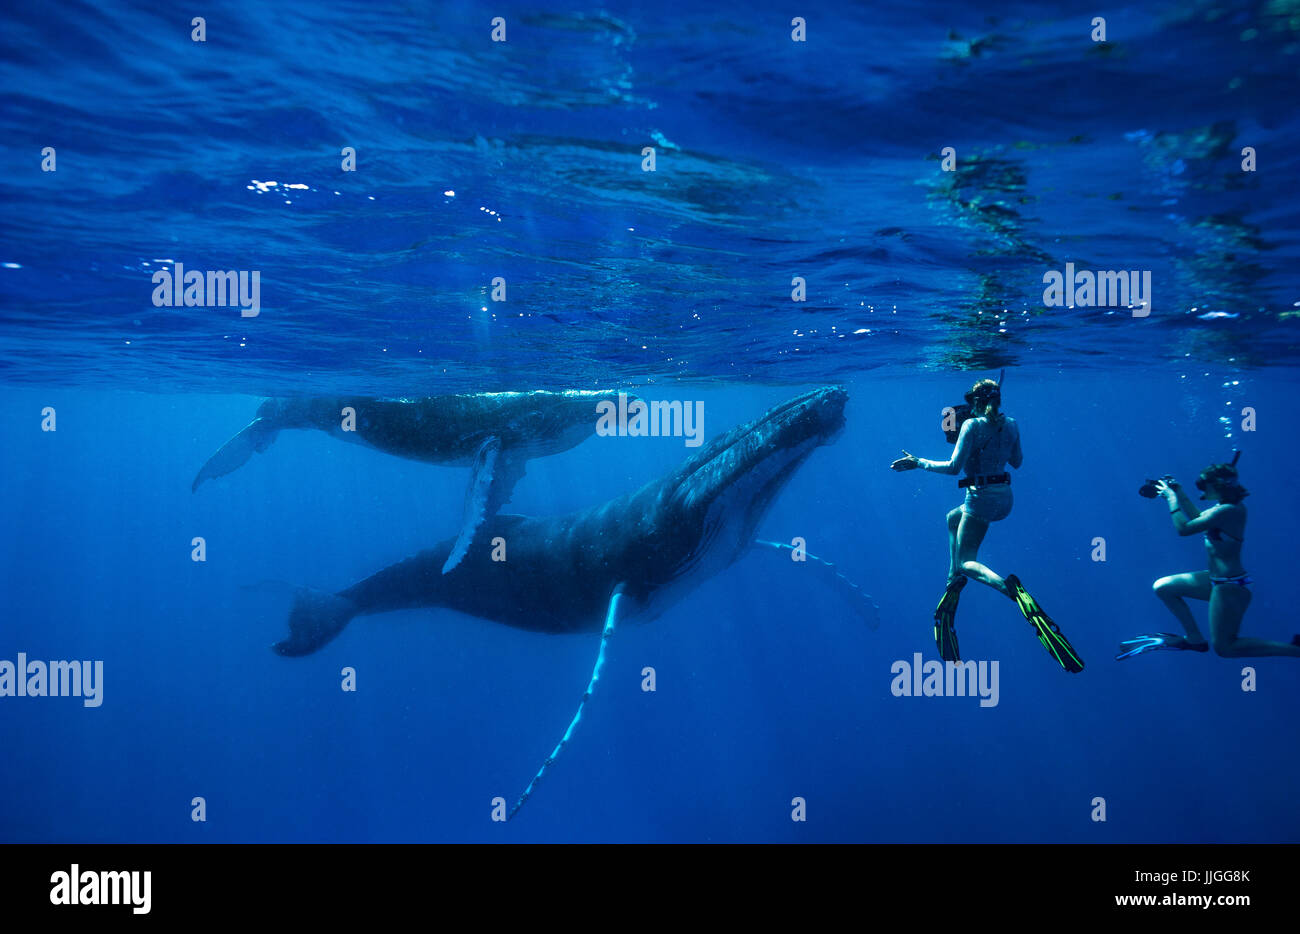 Snorkelers swimming with humpback whales in ocean, Kingdom of Tonga, Ha'apai Island group, Tonga - Stock Image